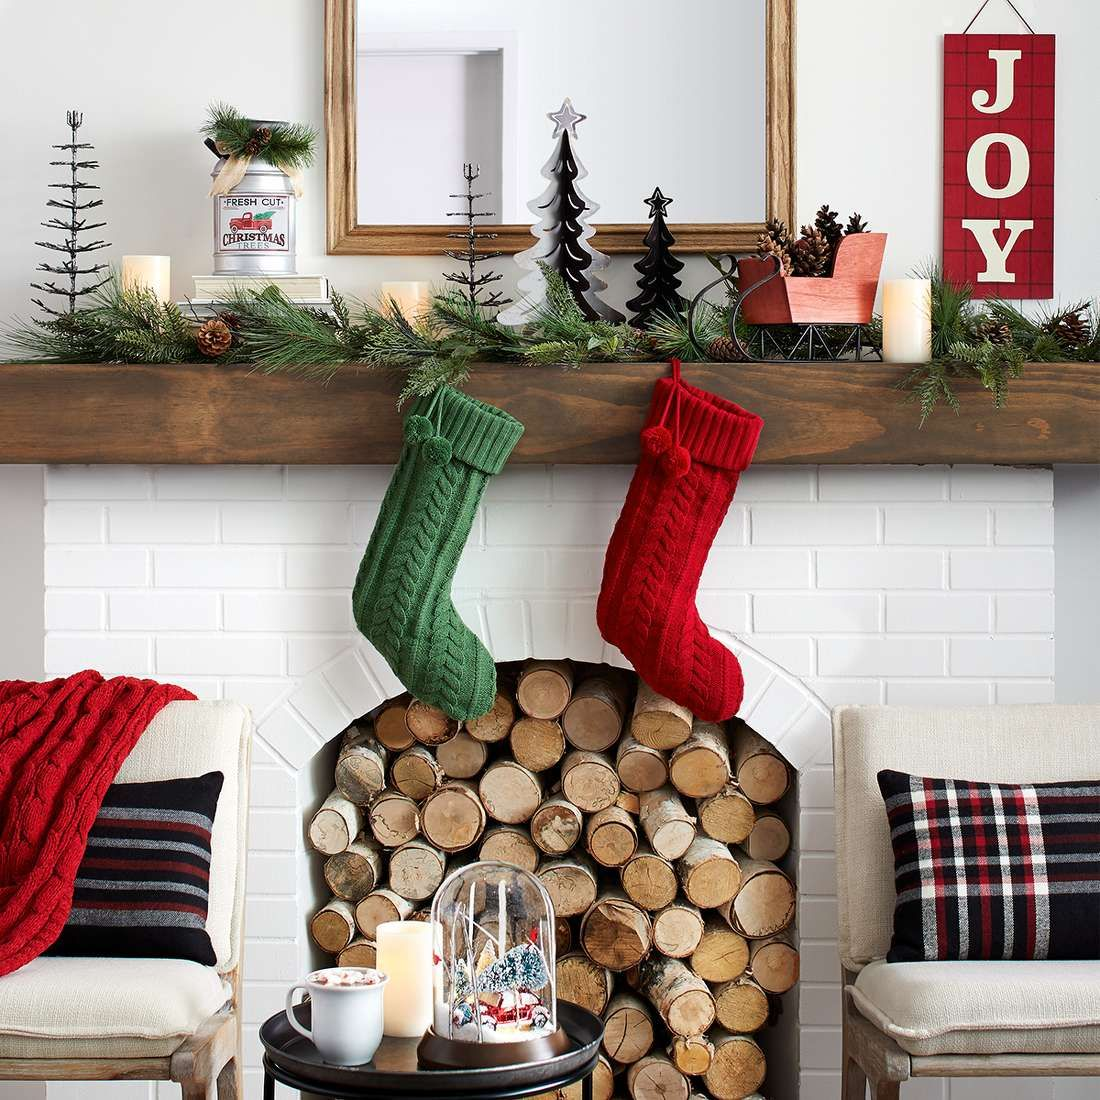 Shop Target For Christmas Decor And Gifts You Will Love At Great Low Prices Free Shipping Returns And Fr Holiday Decor Red Christmas Decor Christmas Mantels